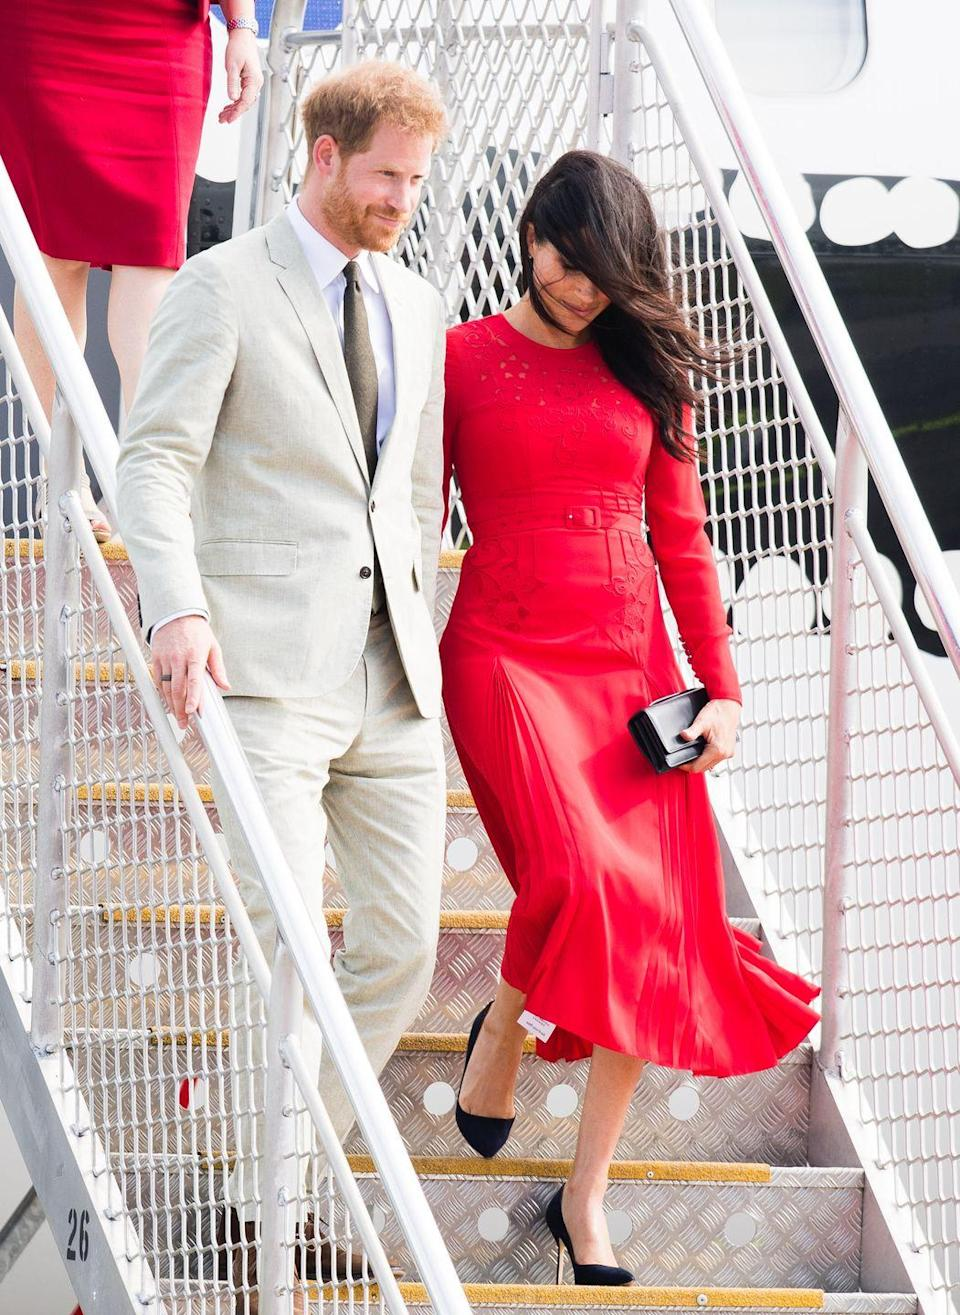 <p>Meghan Markle forgot to remove a tag from her dress before she and Prince Harry arrived at Nuku'alofa Airport in Tonga. </p>